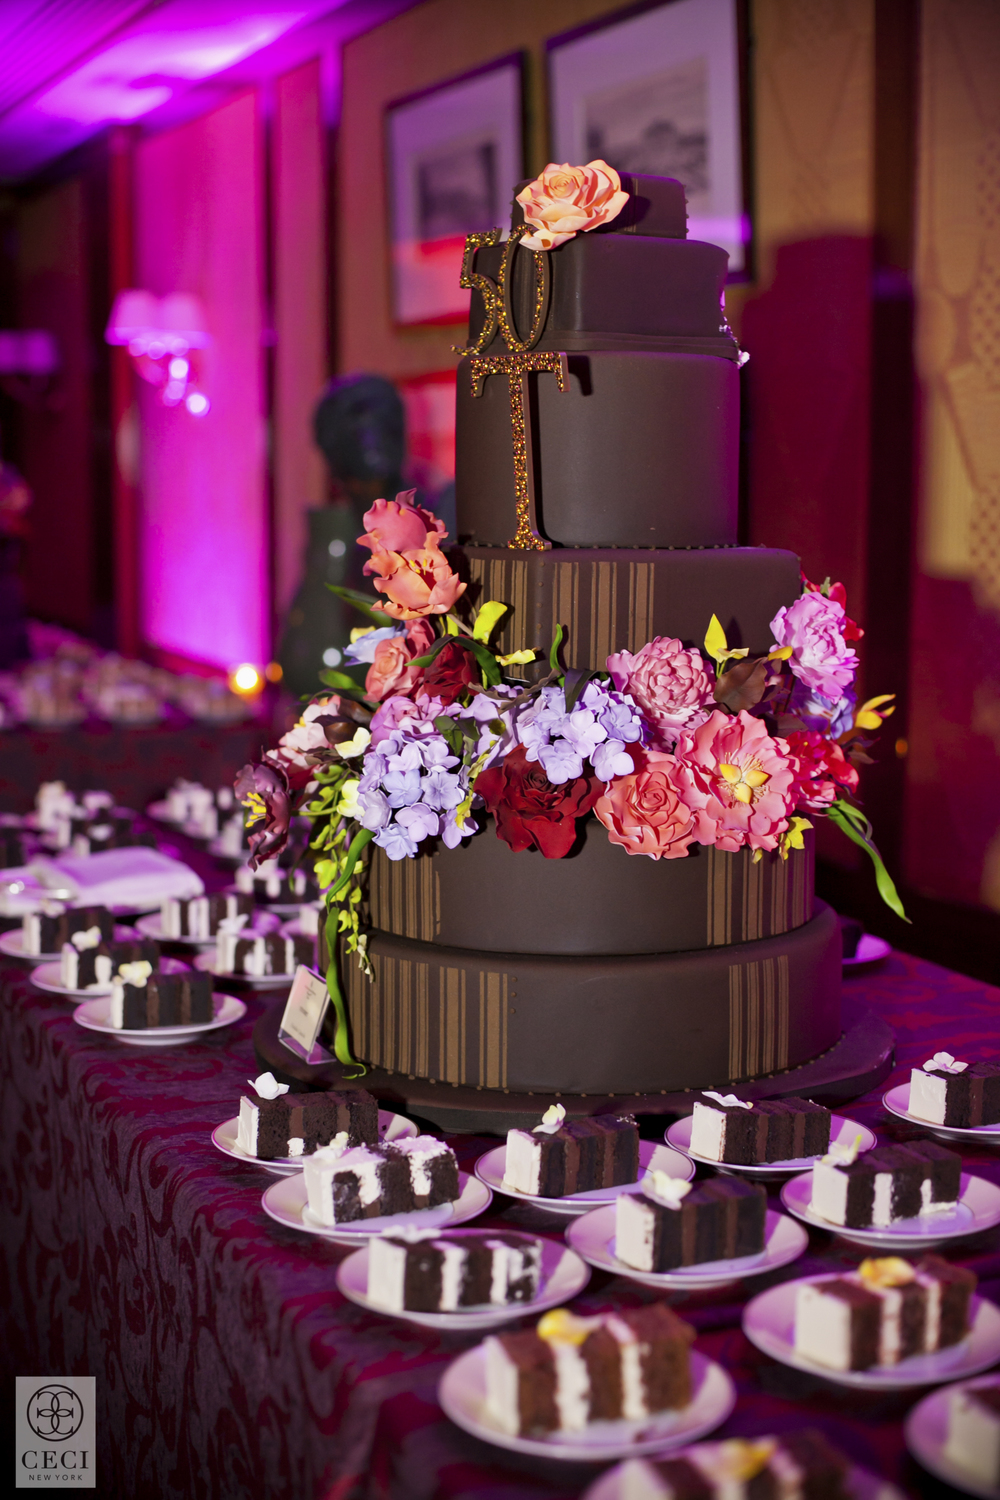 ceci_new_york_lucas_somoza_purple_regal_wediding_birthday_commitment_ceremony_gold-38.jpg